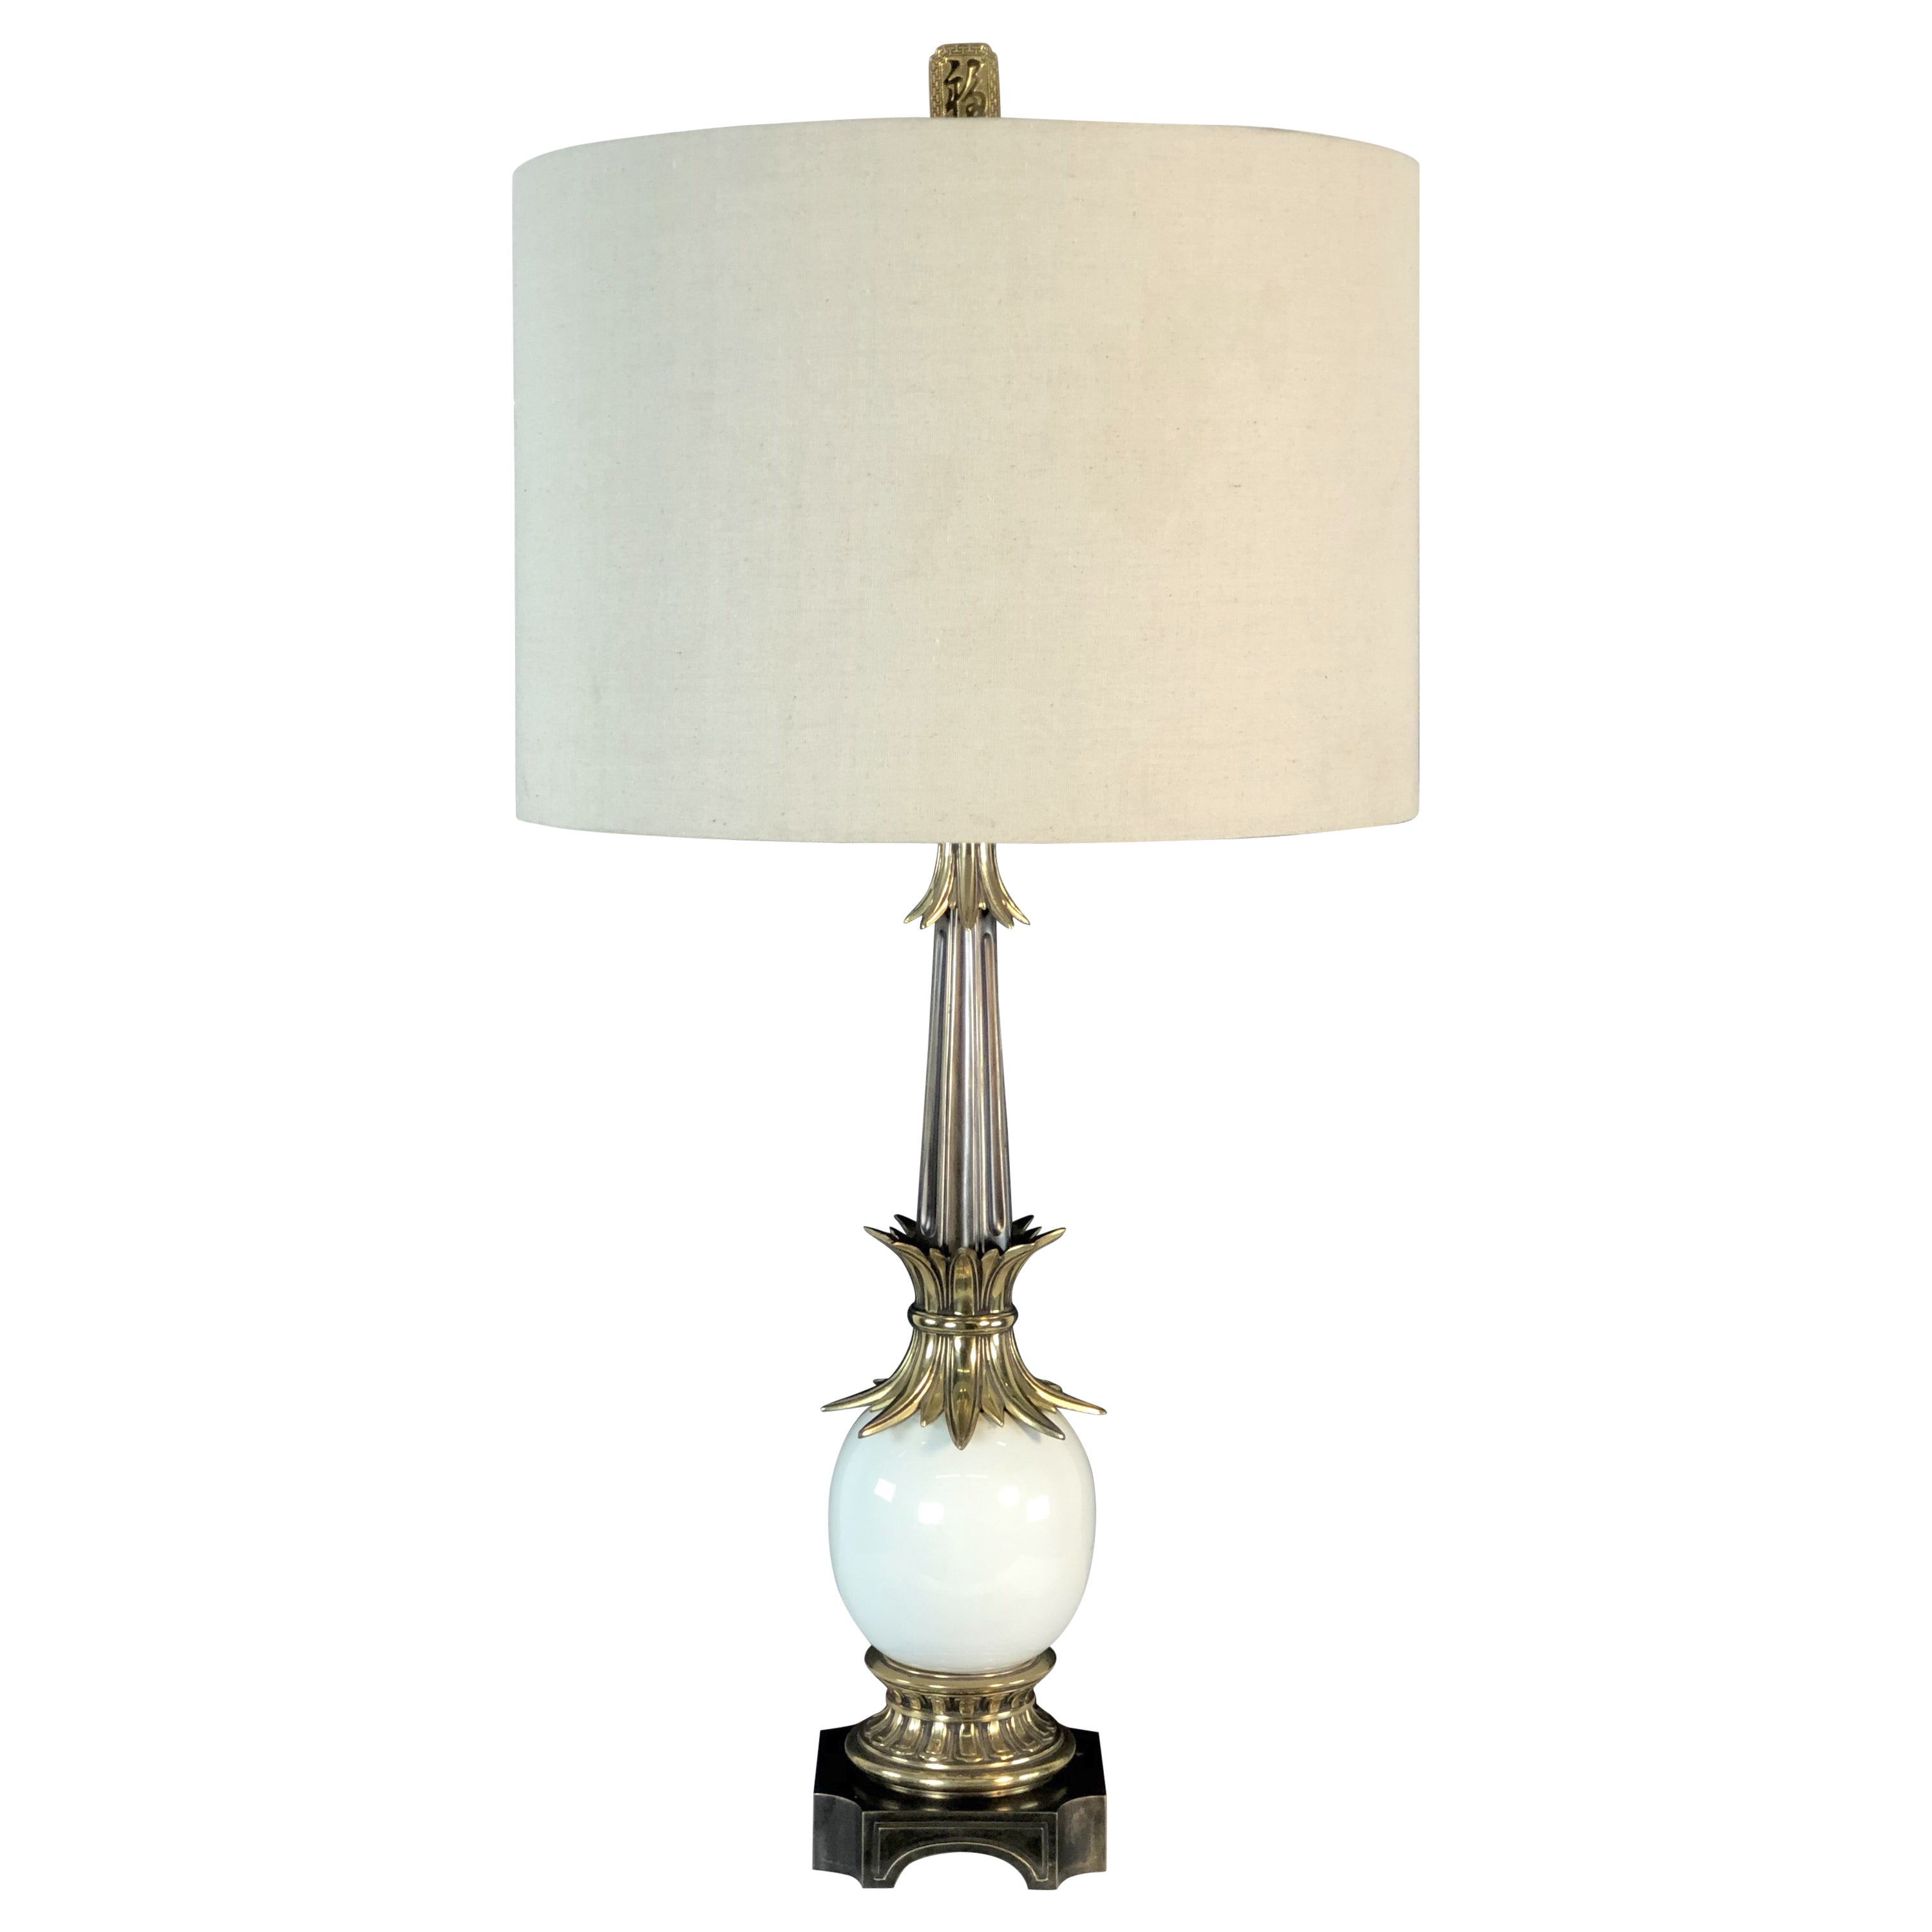 1970s Stiffel Brass and Ceramic Table Lamp